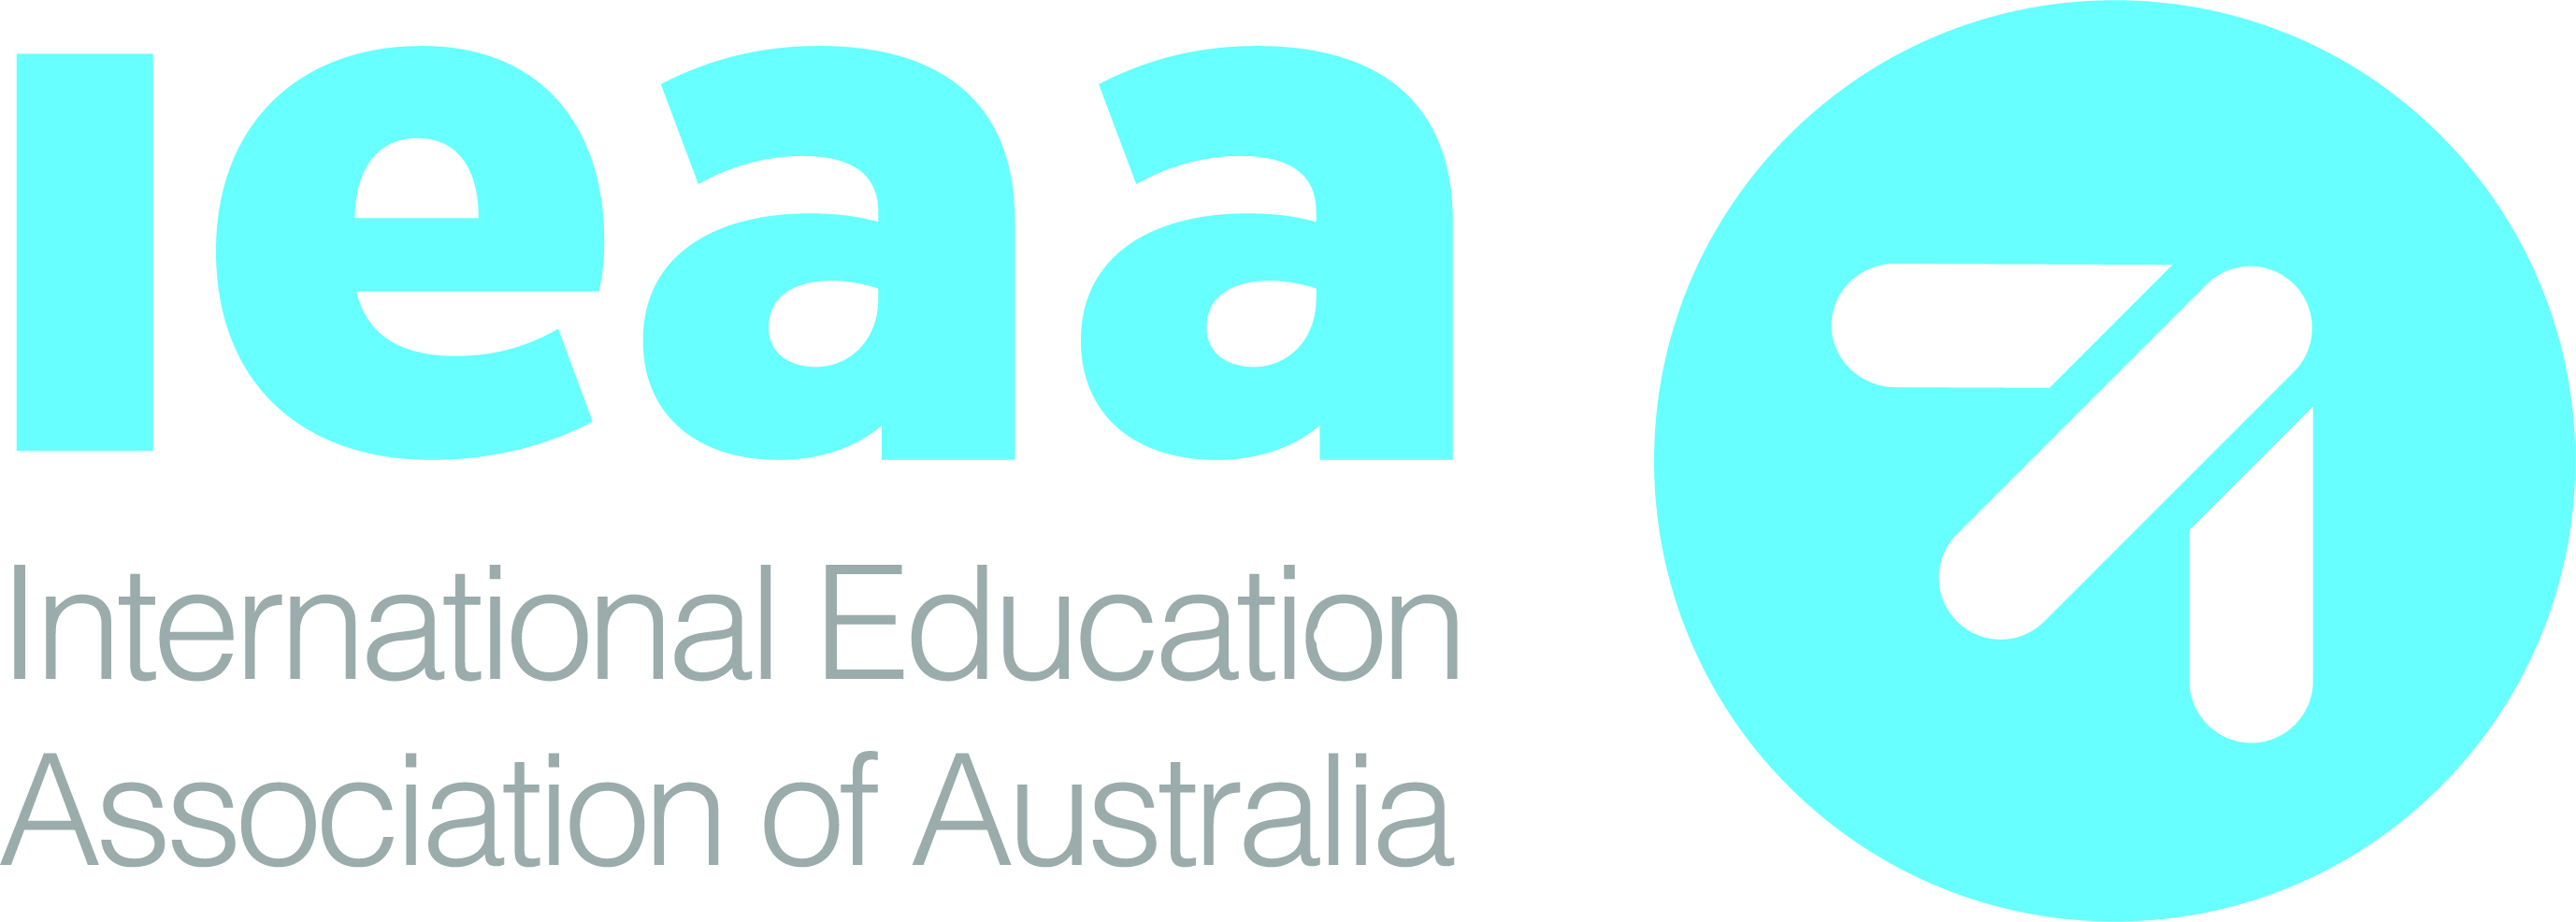 International Education Association of Australia (IEAA)